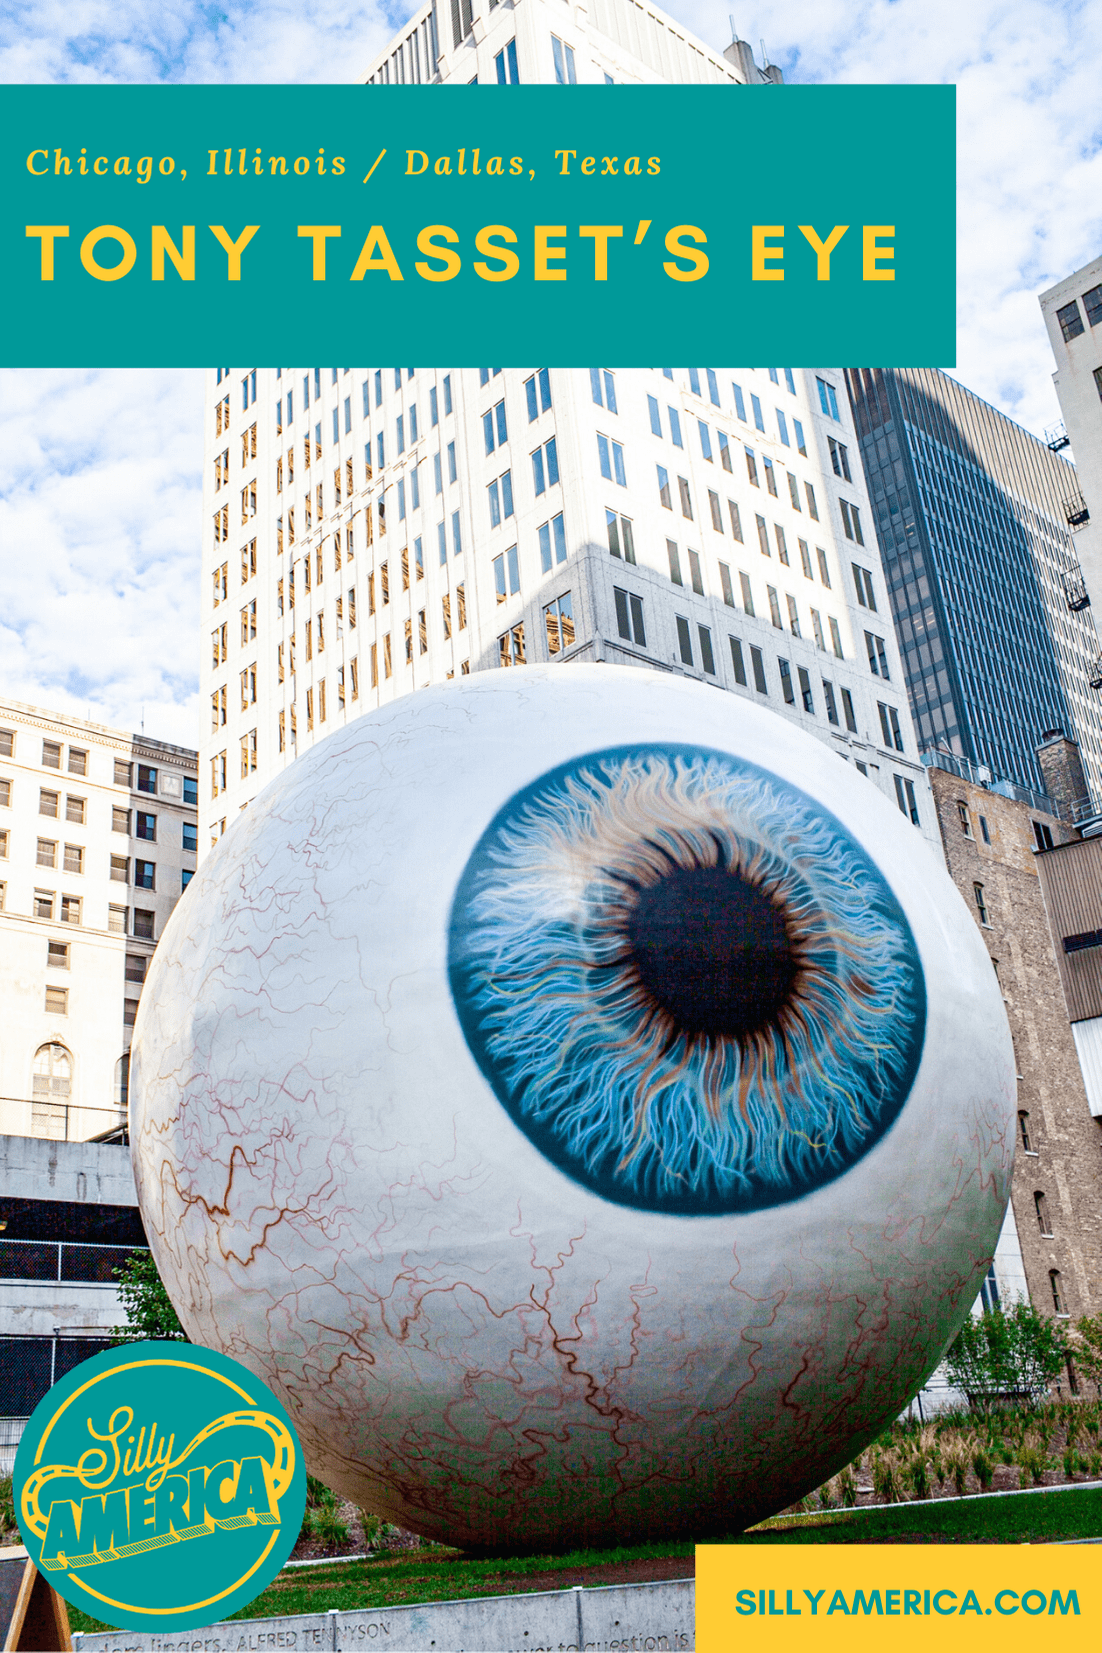 Tony Tasset's Eye, a giant fiberglass eyeball at the Joule Hotel in Dallas, Texas was originally erected in Chicago, Illinois and constructed by FAST Fiberglass in Wisconsin. #RoadsideAttraction #RoadsideAttractions #WeirdRoadsideAttractions #VintageRoadsideAttractions #RoadTripStops #WorldsLargestRoadsideAttractions #RoadTrip #USARoadsideAttractions #AmericanRoadsideAttractions #USA #America #Texas #DallasTexas #TexasRoadsideAttractions #TexasRoadsideAttraction #TexasRoadTrip #TexasRoadTripMap